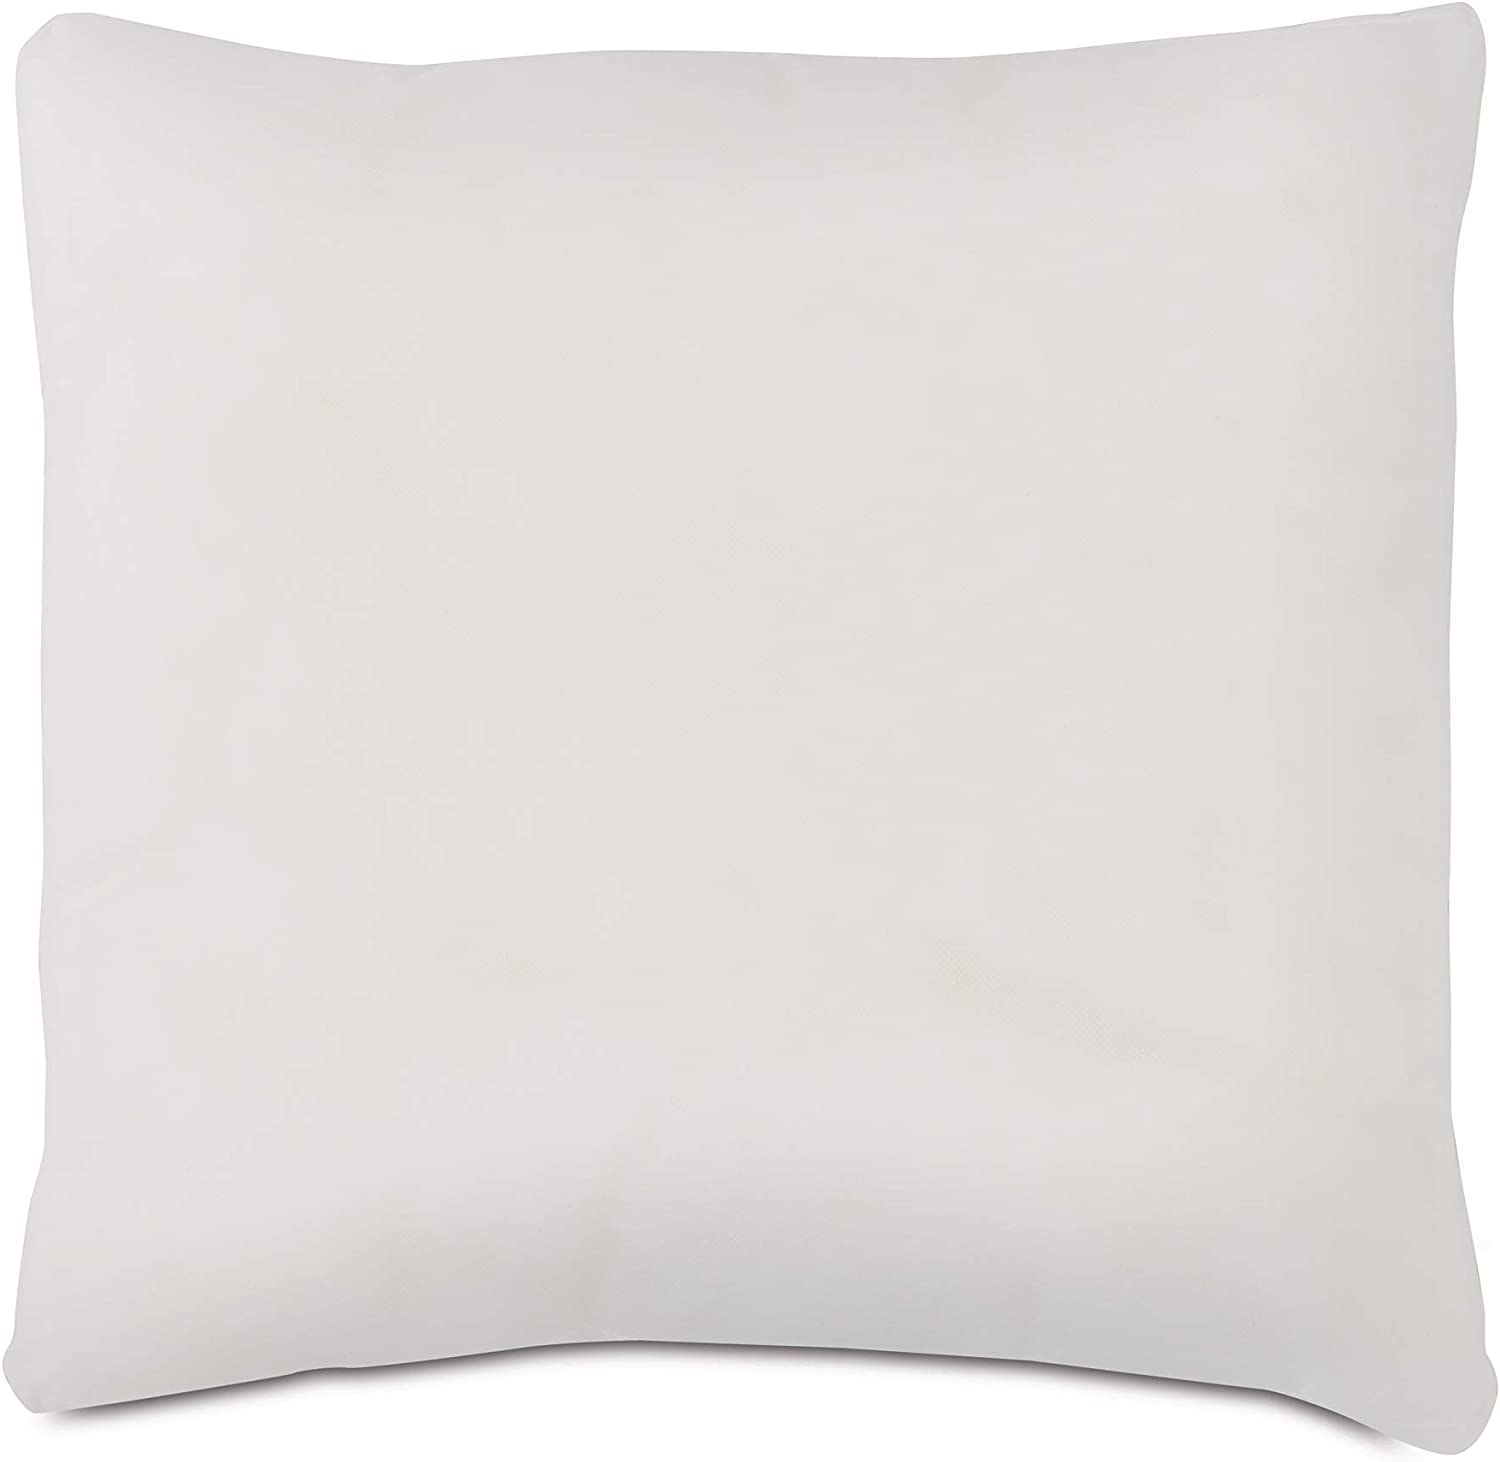 18x18x2 Outdoor Water Resistant Poly Pillow Breath Boxed Colorado Springs Ranking TOP17 Mall Insert